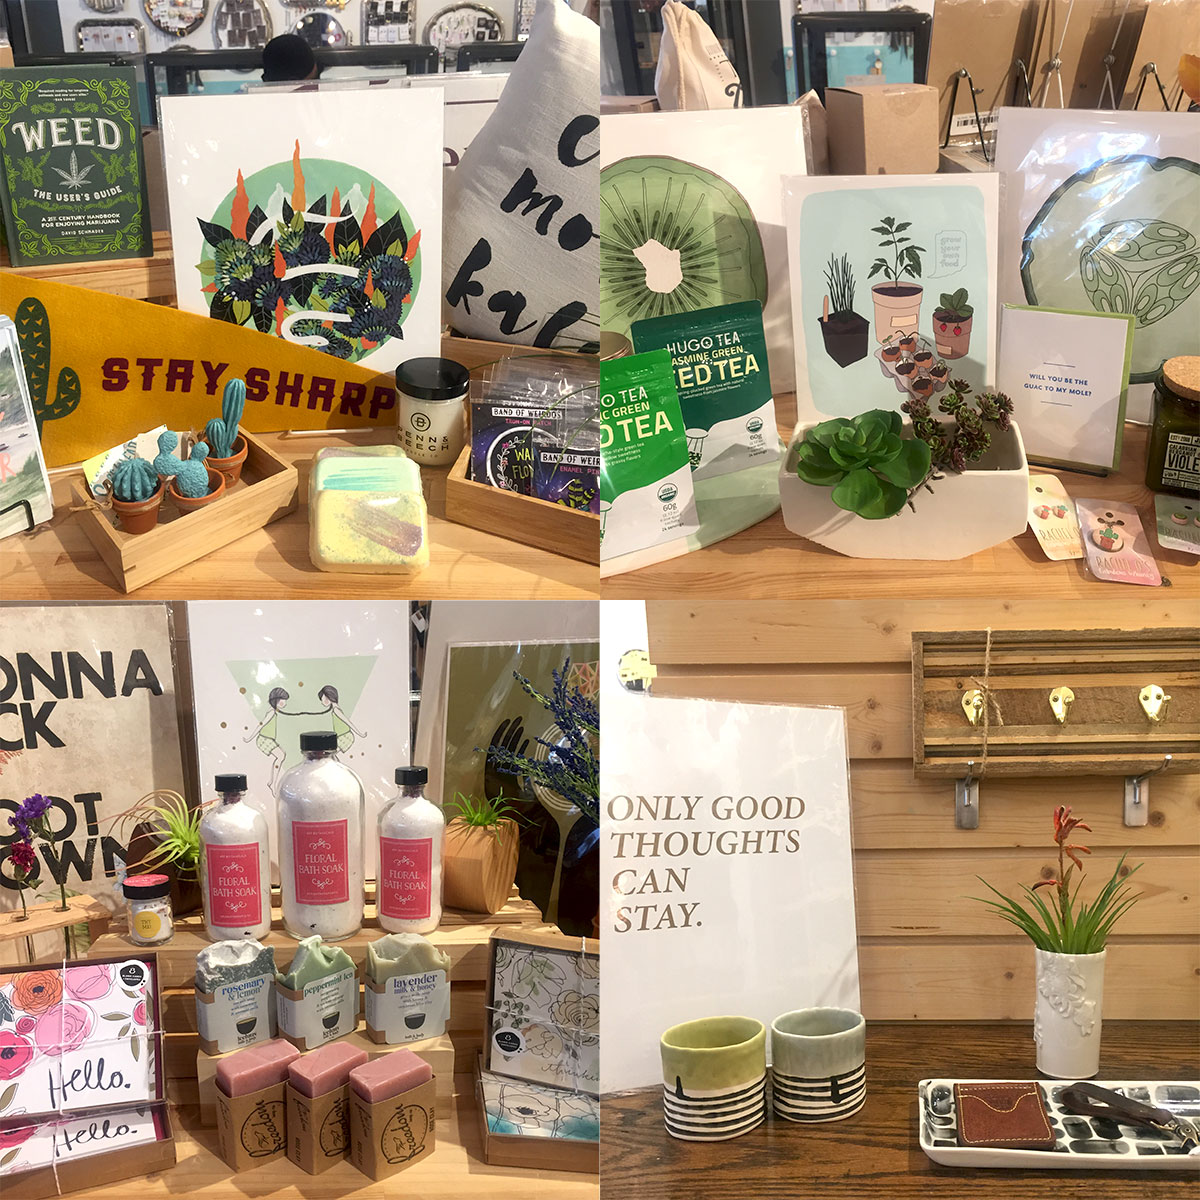 From plant based candles, to ceramic planters, to herbal soaps and soaks, find some spring at Homespun: Modern Handmade.